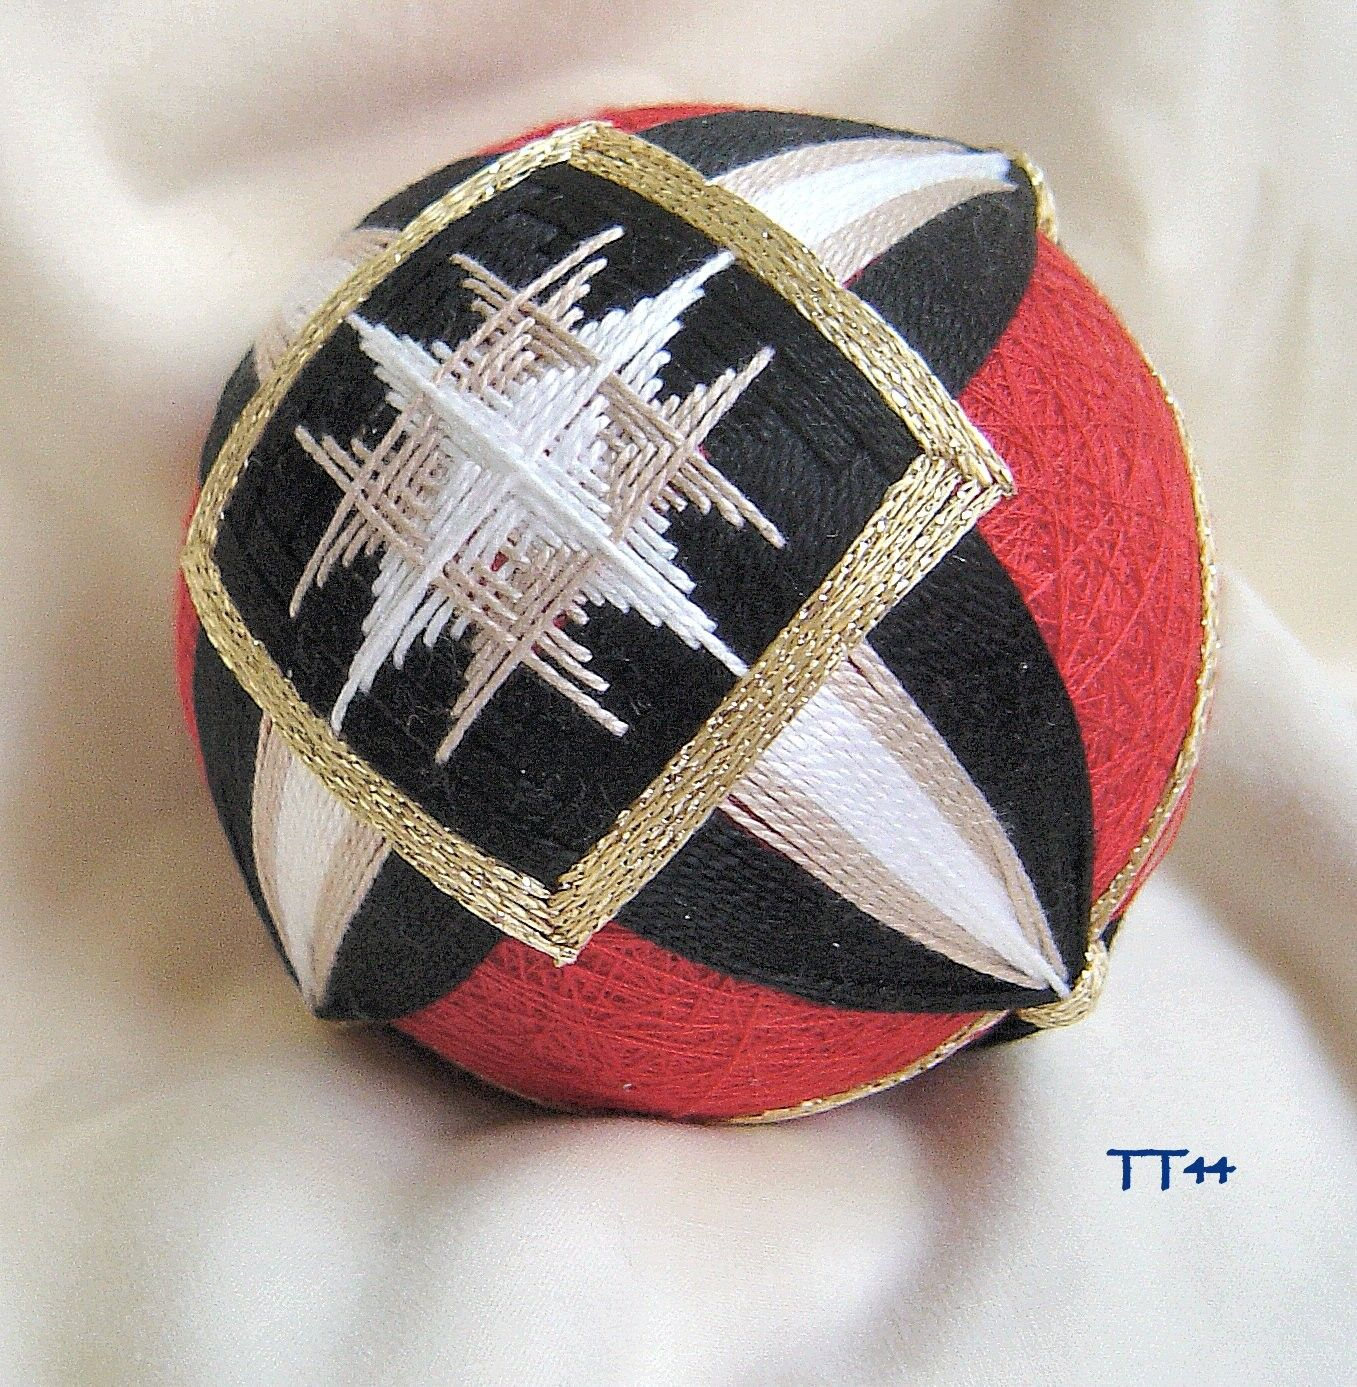 Temari Creations are all unique, no two are ever alike. Their craftsmanship is superb.